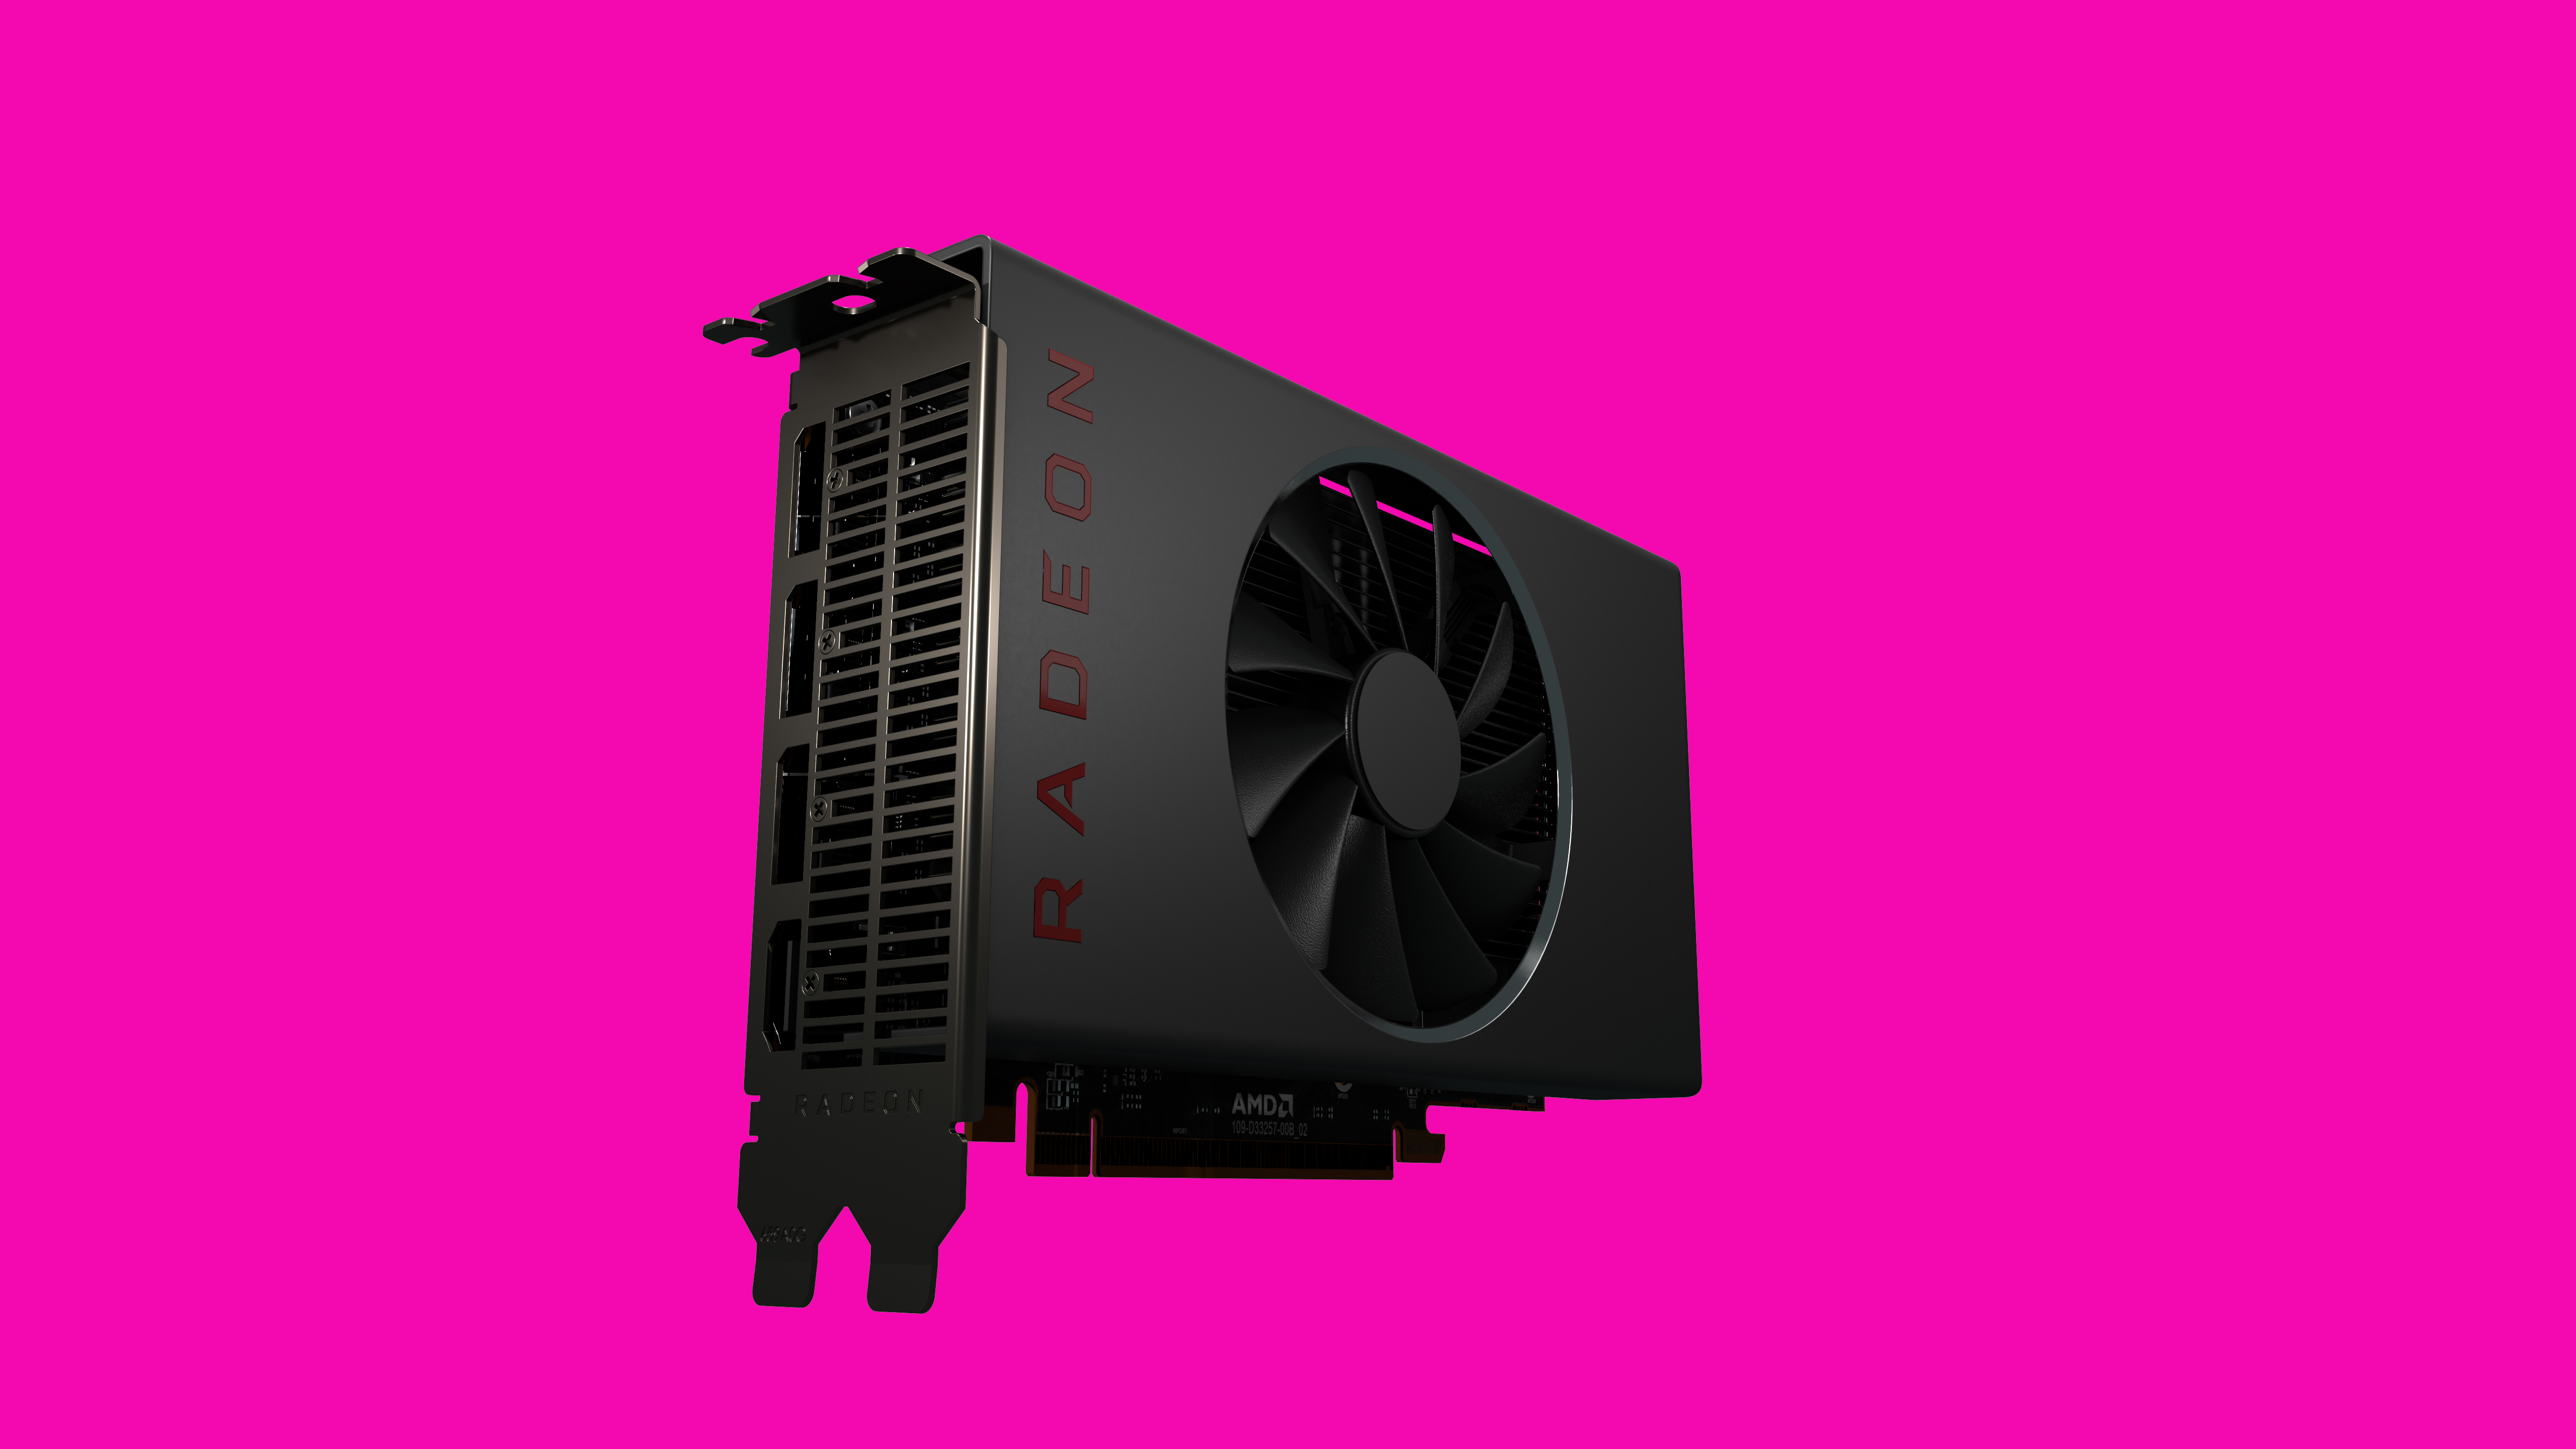 AMD Radeon RX 5500 leak shows a budget GPU aiming to blow Nvidia's GTX 1650 out of the water